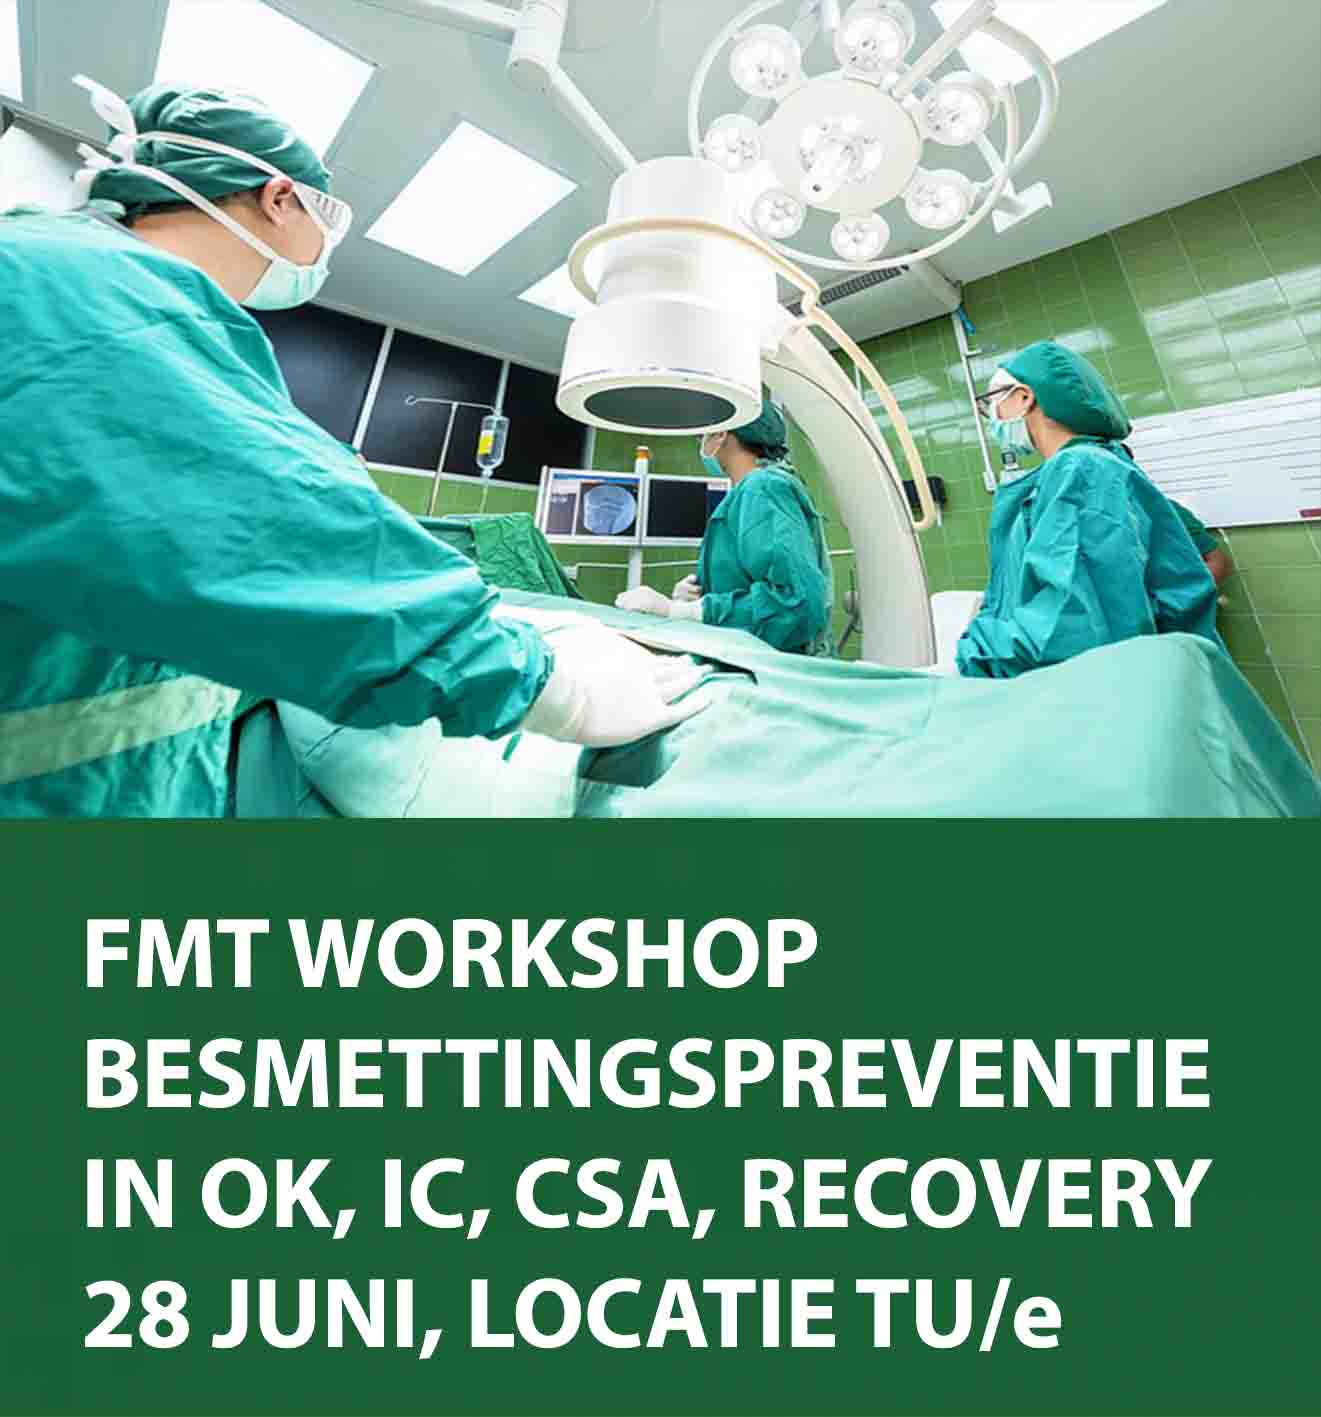 Workshop besmettingspreventie